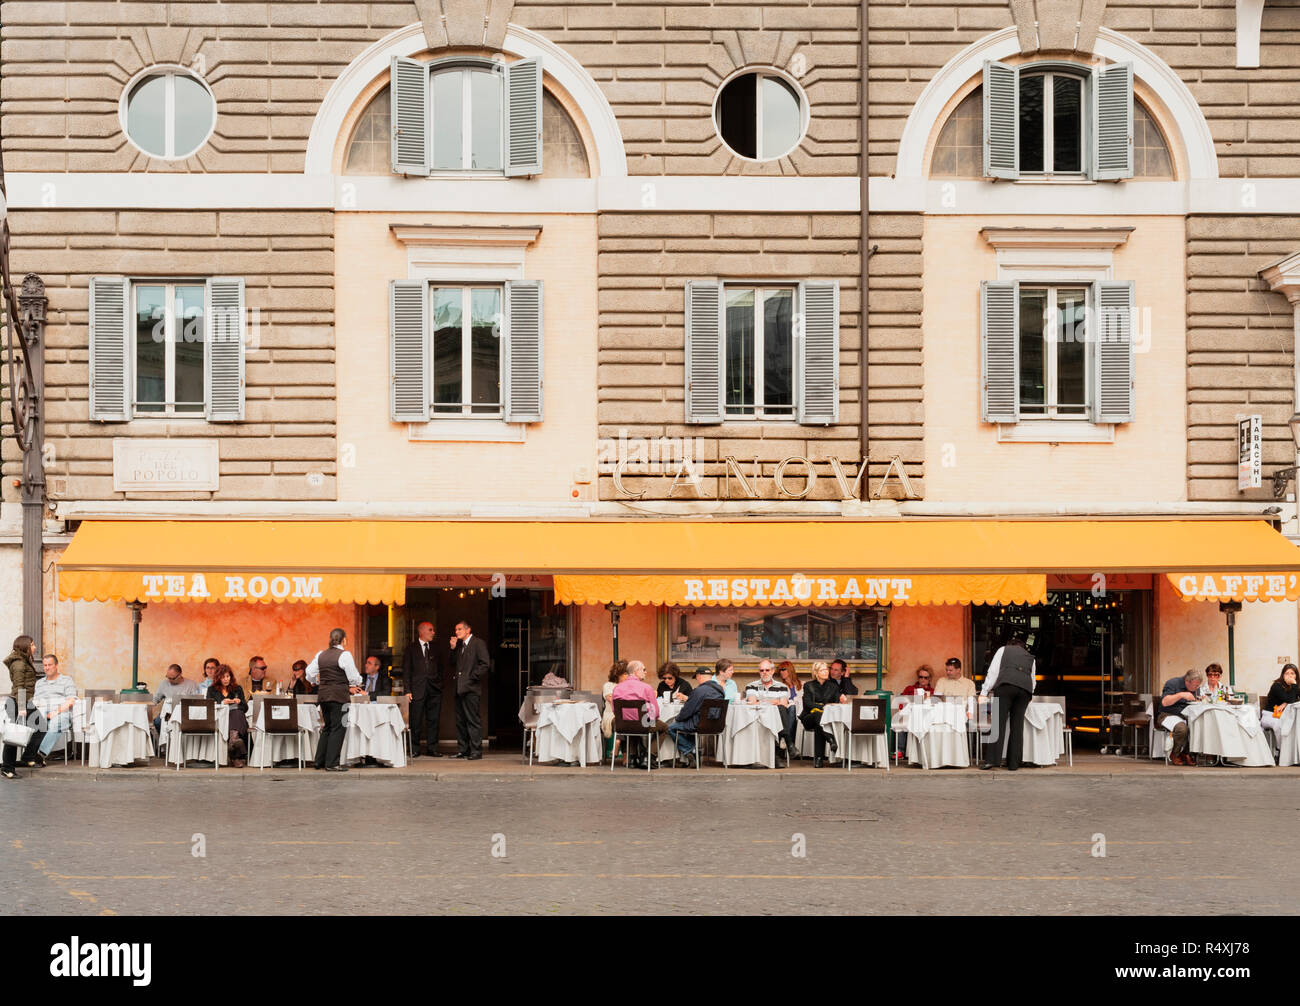 Dining alfresco, Diners and italian waiters at tables outside  the Restaurant Canova in Piazza del Popolo Rome - Stock Image